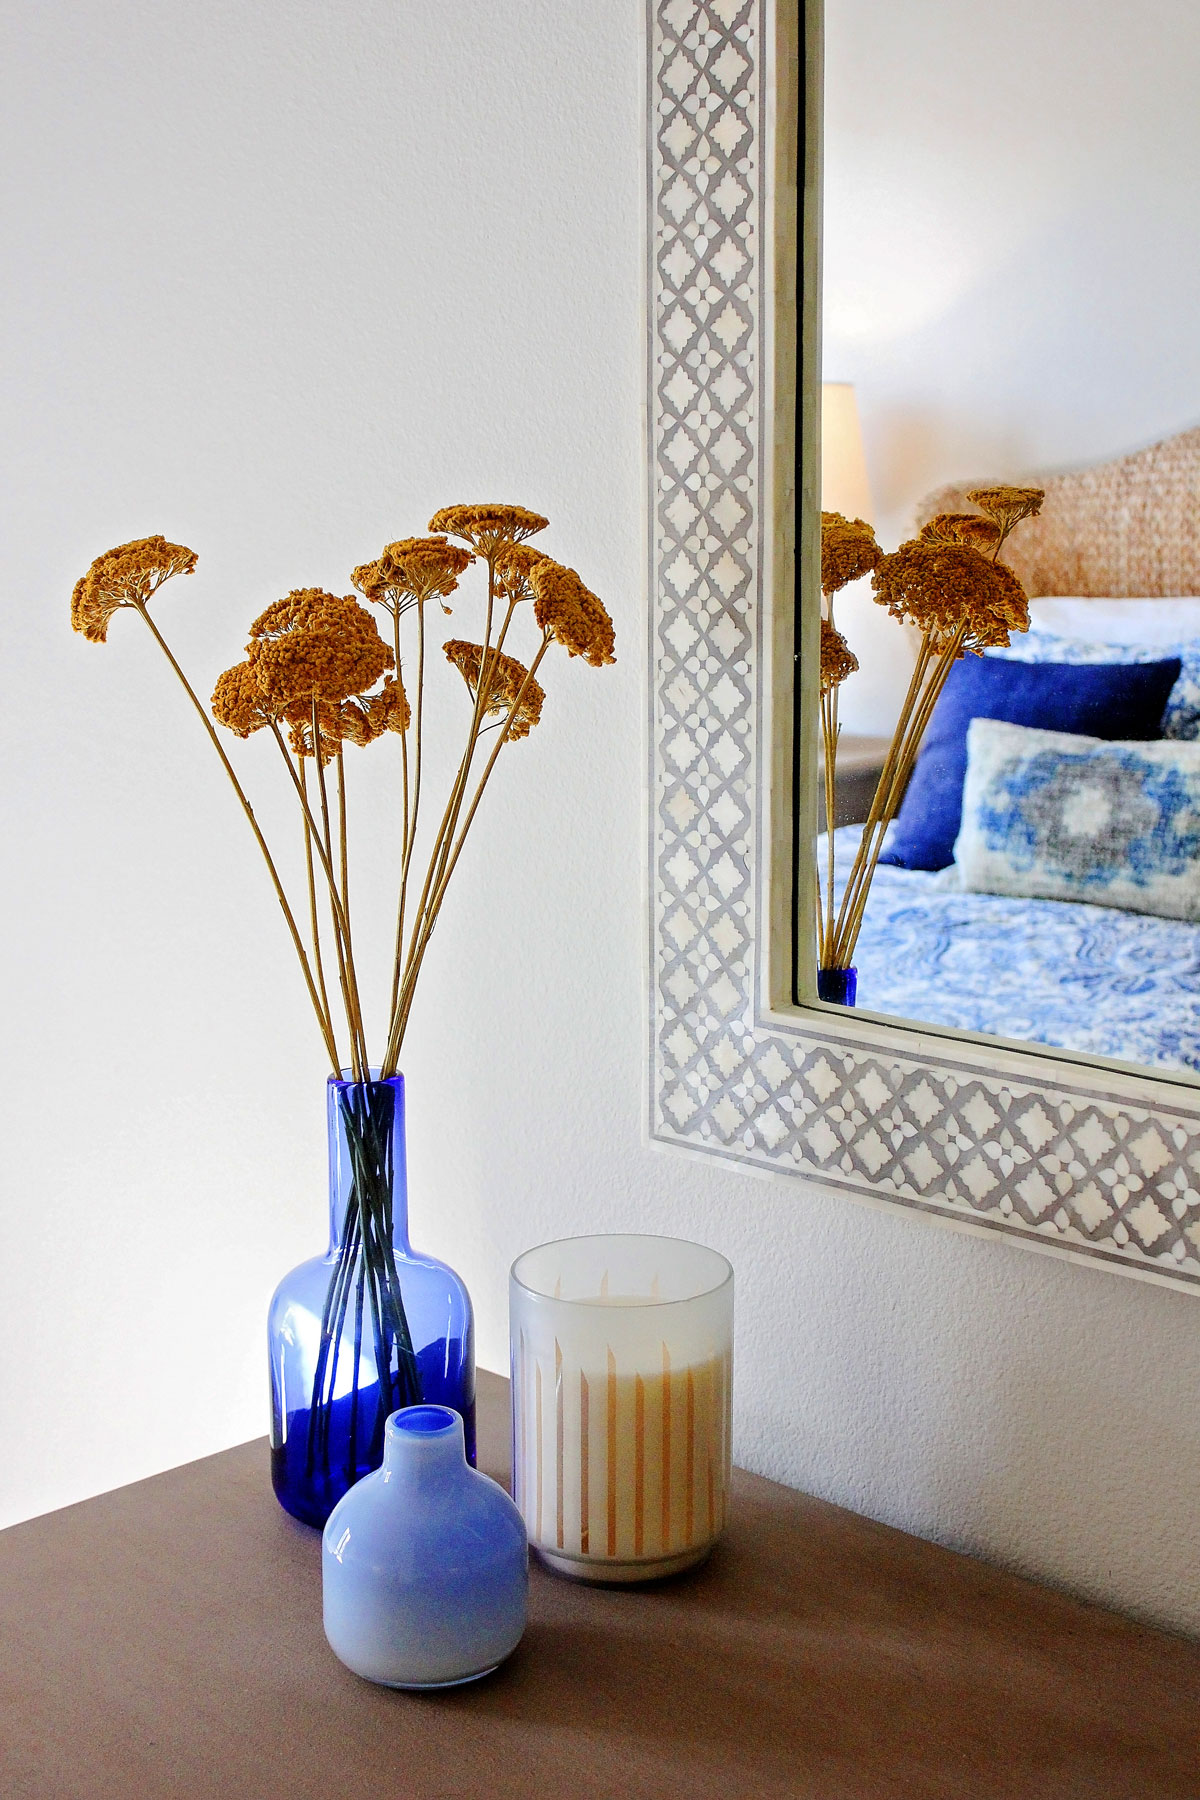 beach-cottage-decor-vignette-mirror-rollins-andrew.jpg